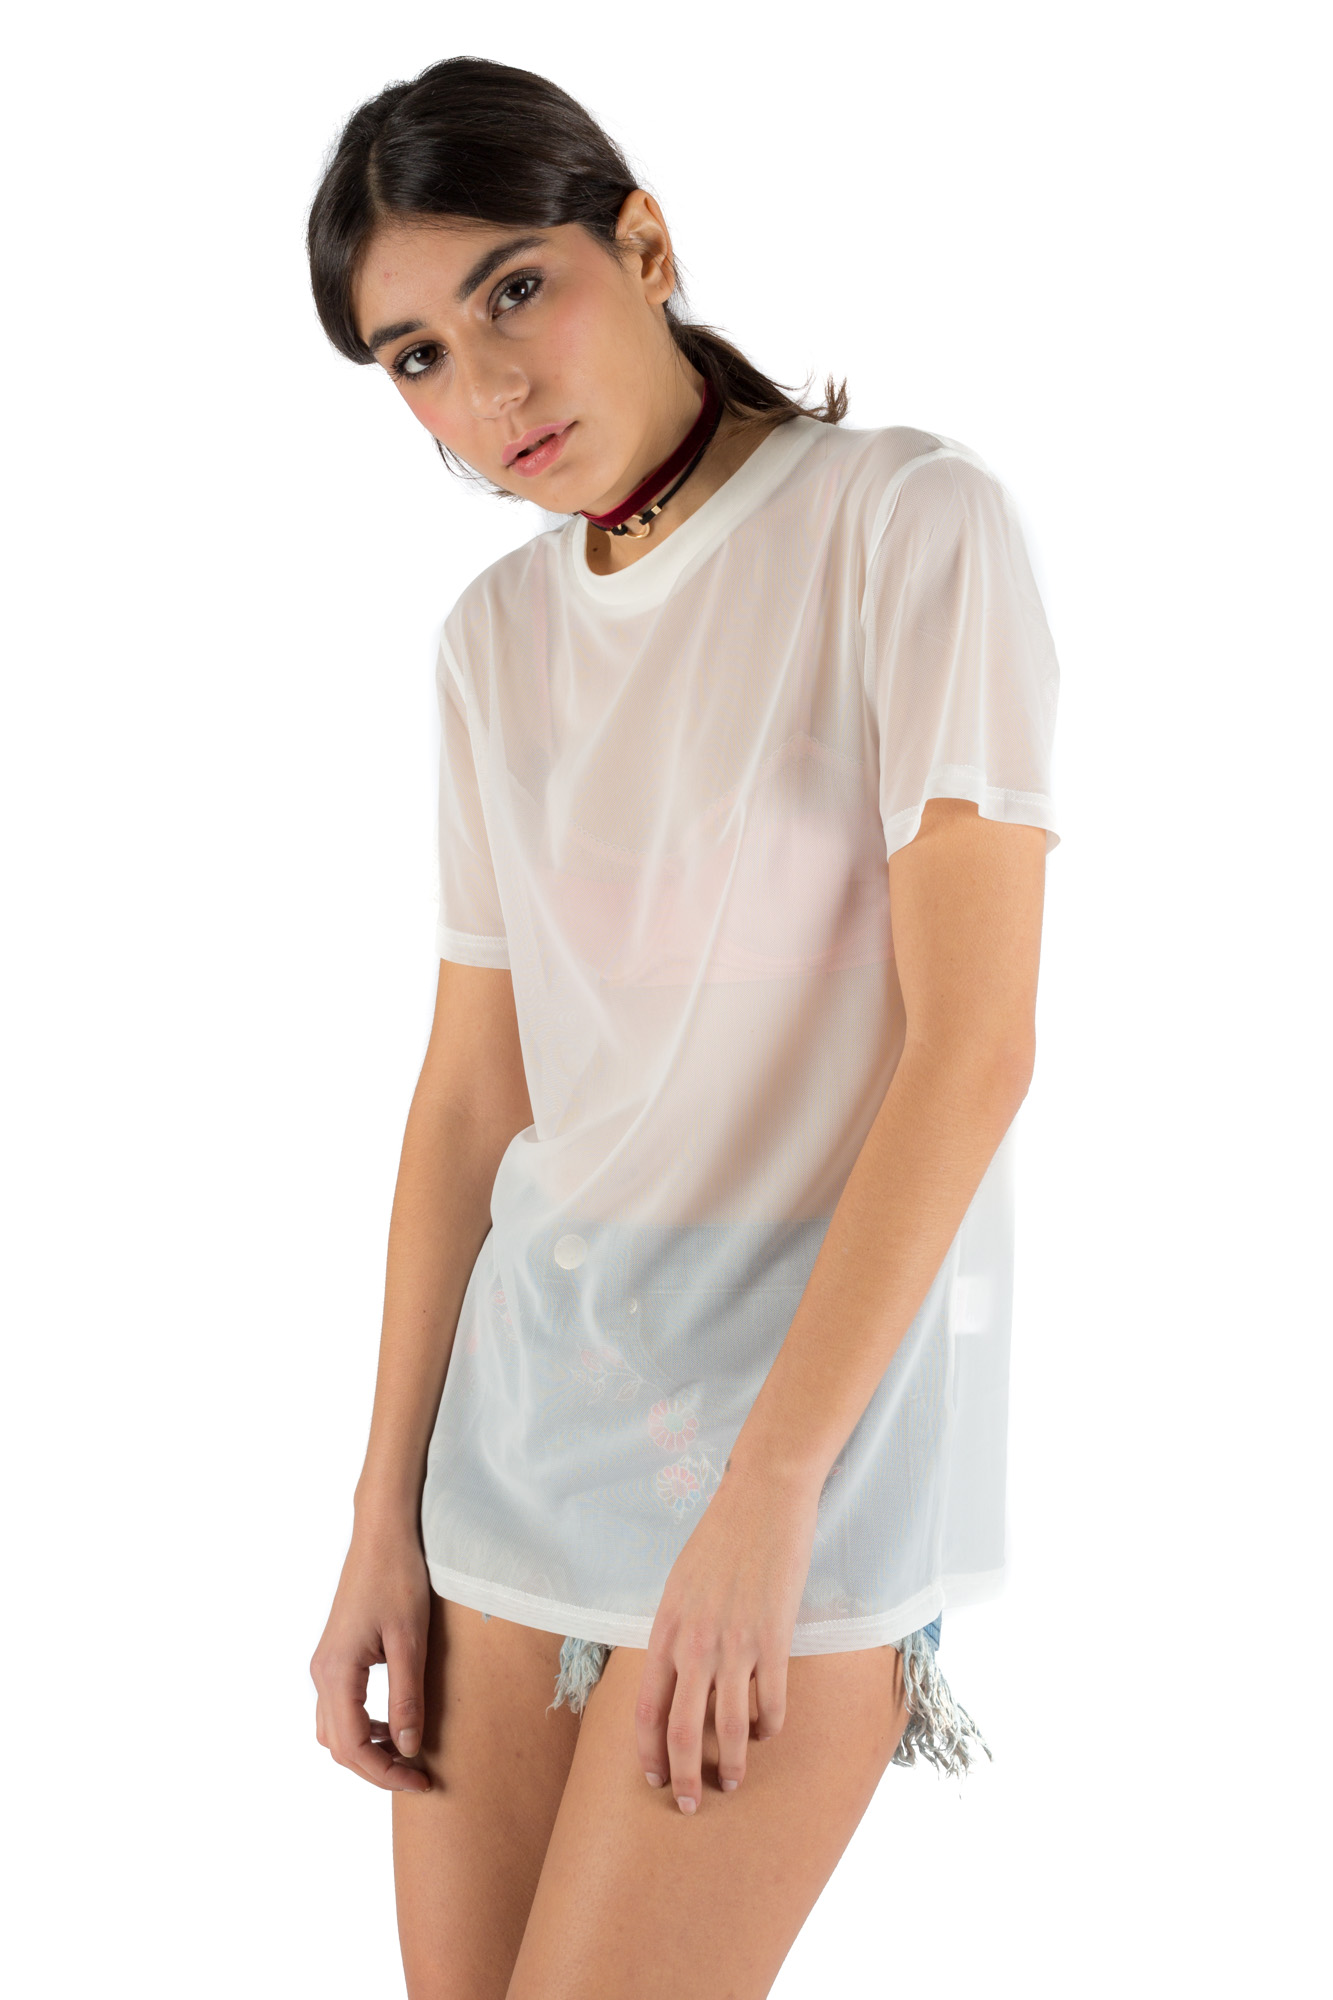 Glamorous - T-shirt in see-through fabric